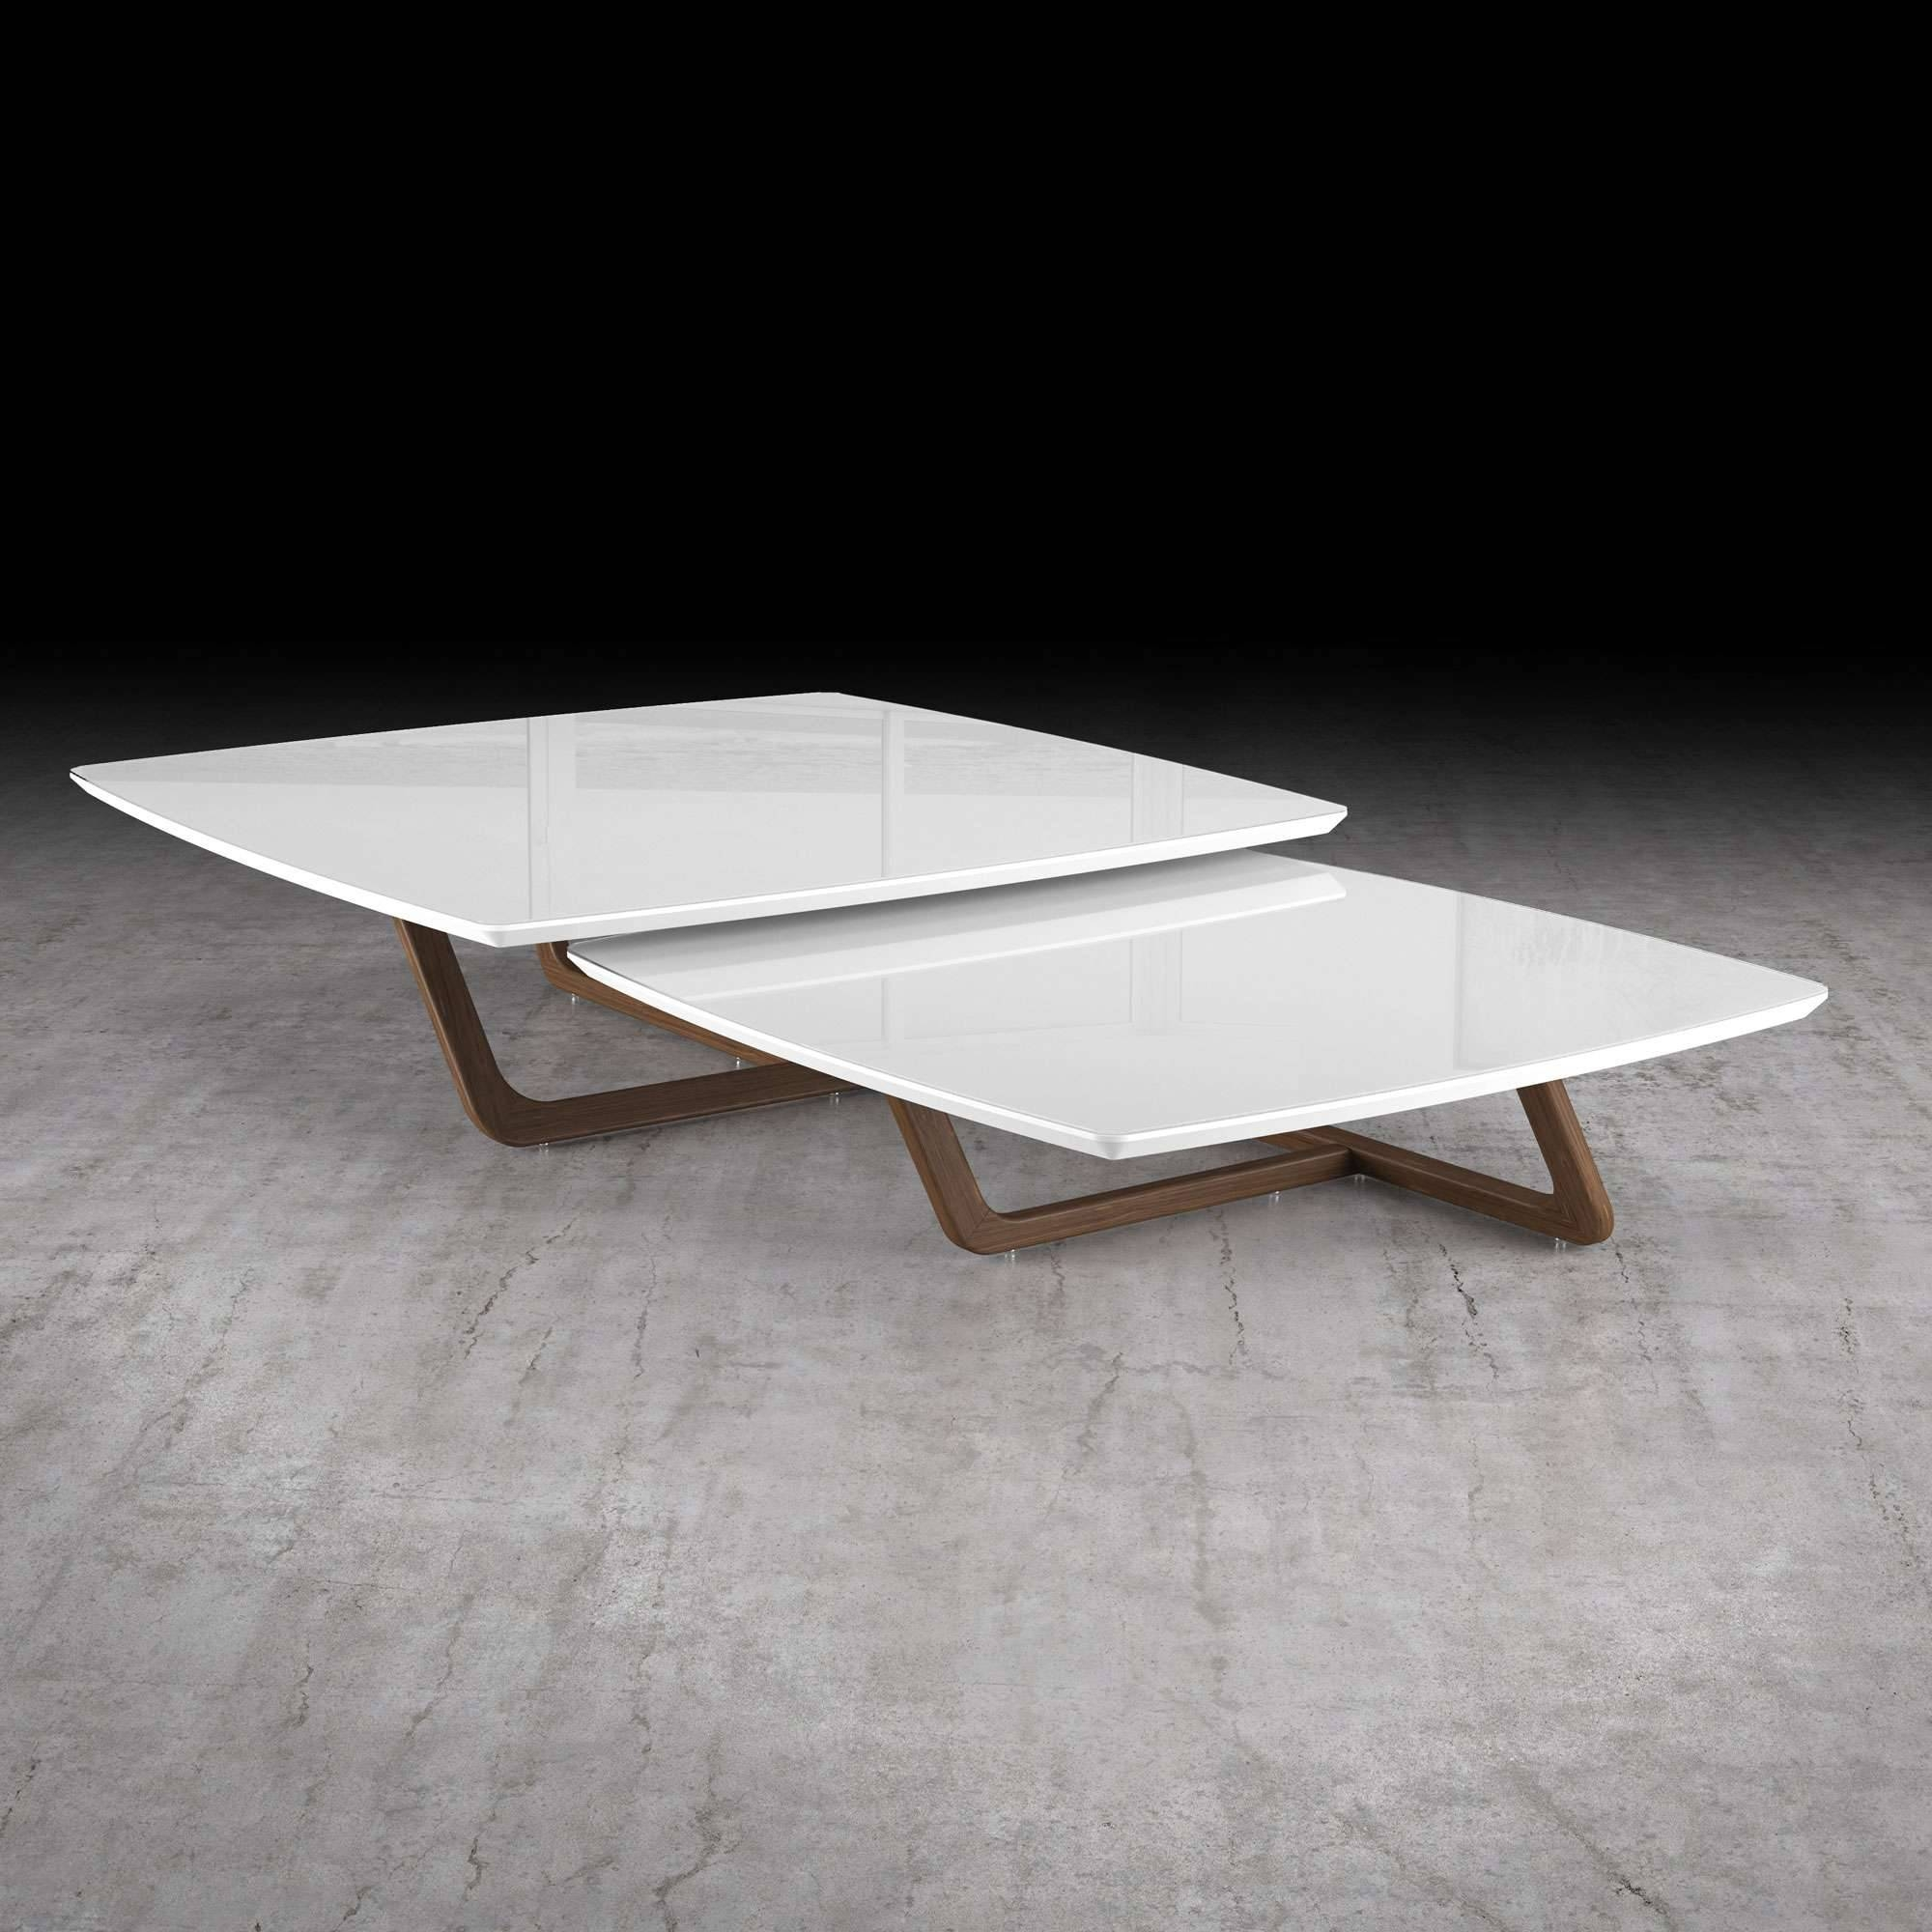 Belvedere 2 Piece Nested Coffee Table Setmodloft | Yliving in 2 Piece Coffee Table Sets (Image 5 of 30)